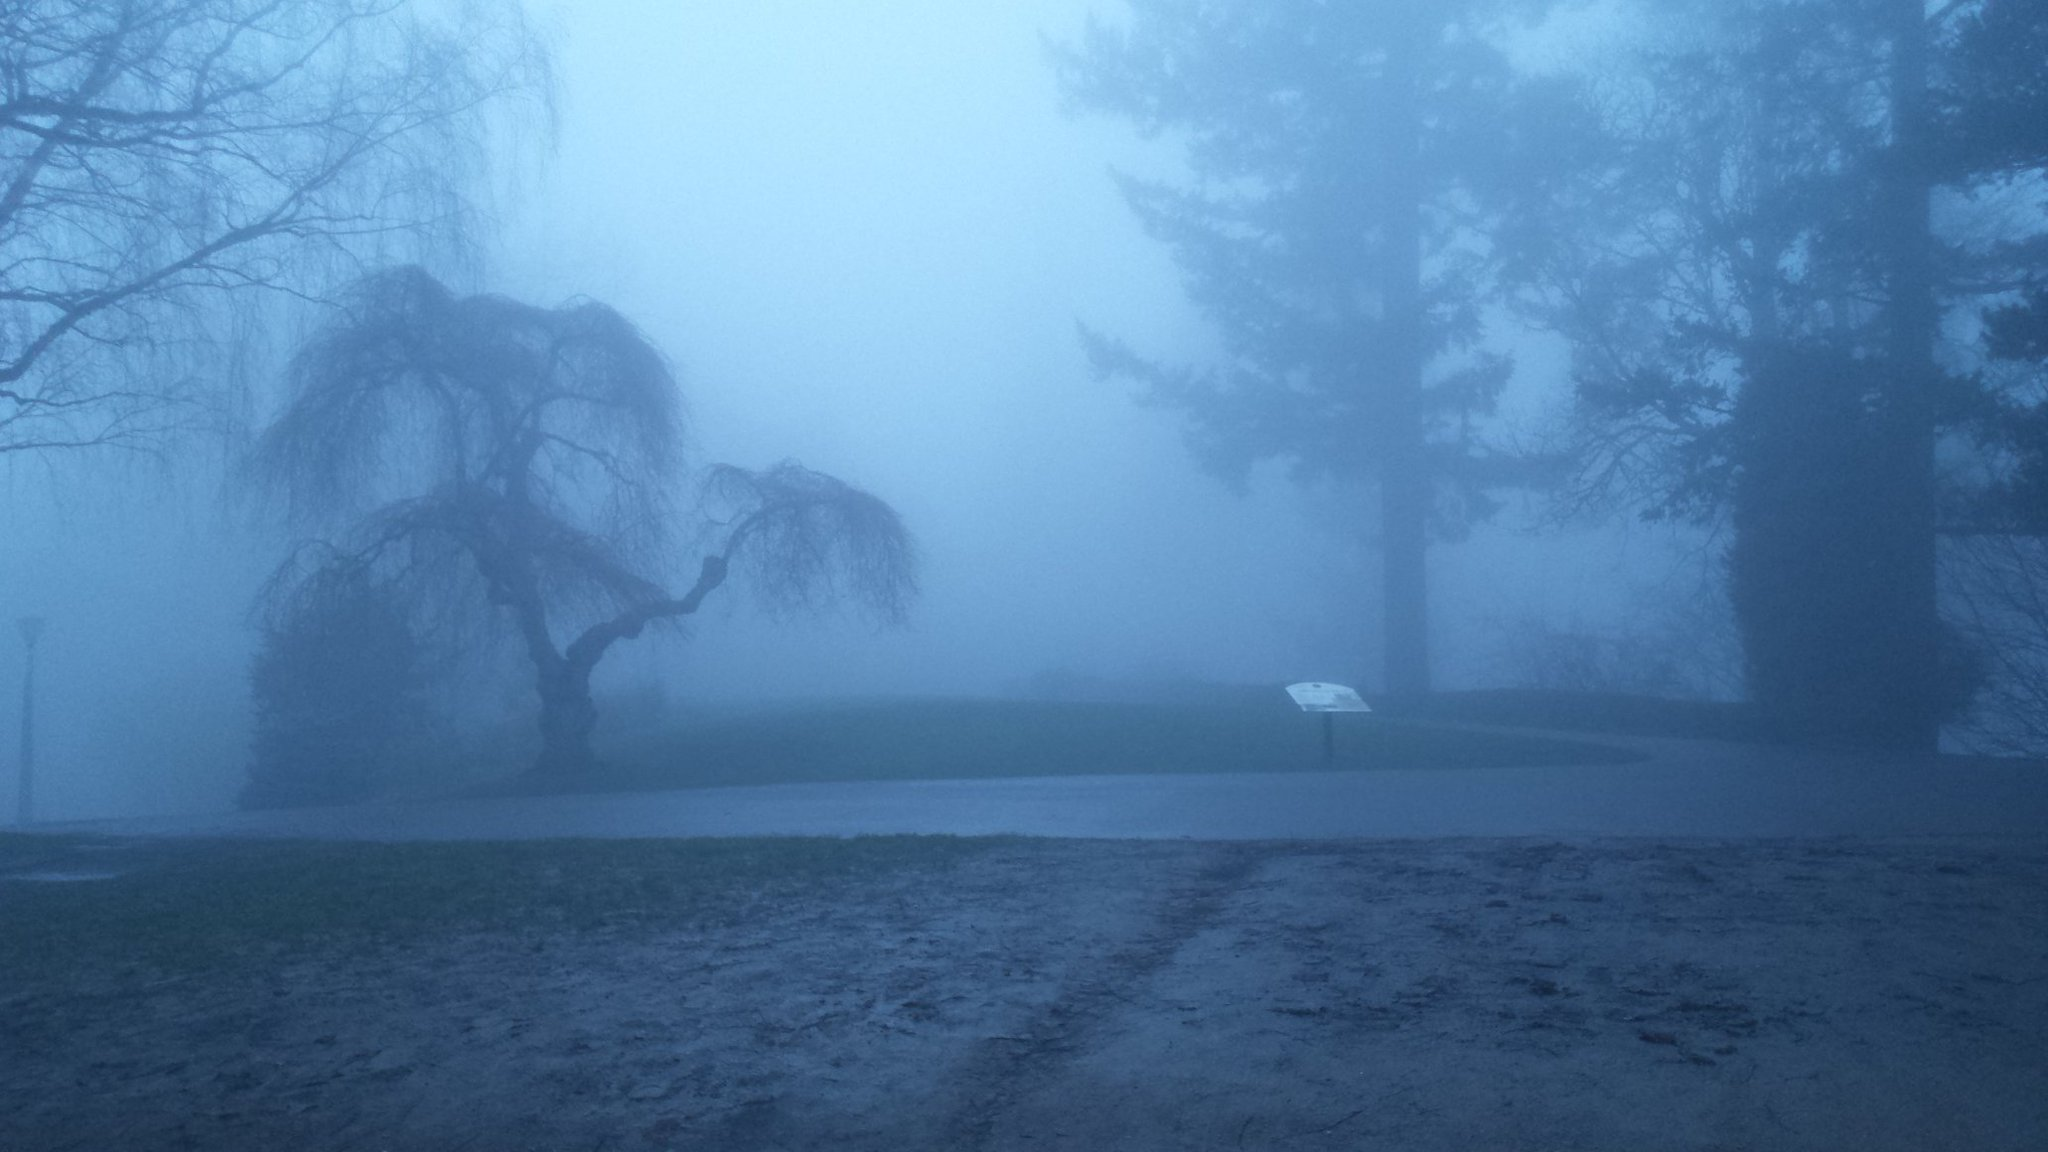 Foggy morning at Pittock Mansion (Photo credit: Anthony Congi, KPTV)